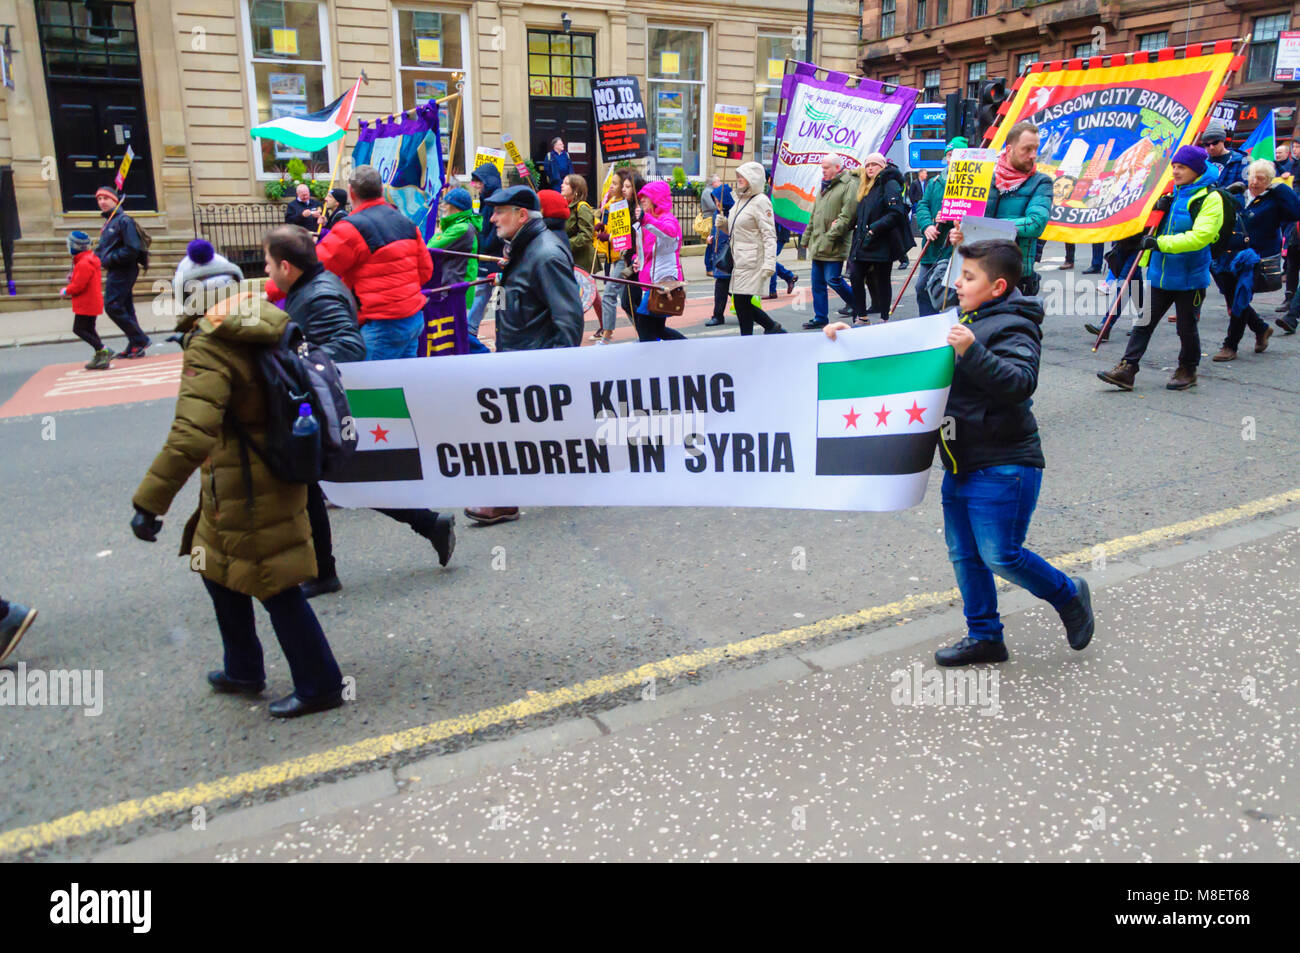 Glasgow, Scotland, UK. 17th March, 2018: Anti-racism protesters march through the streets of the city from Holland - Stock Image